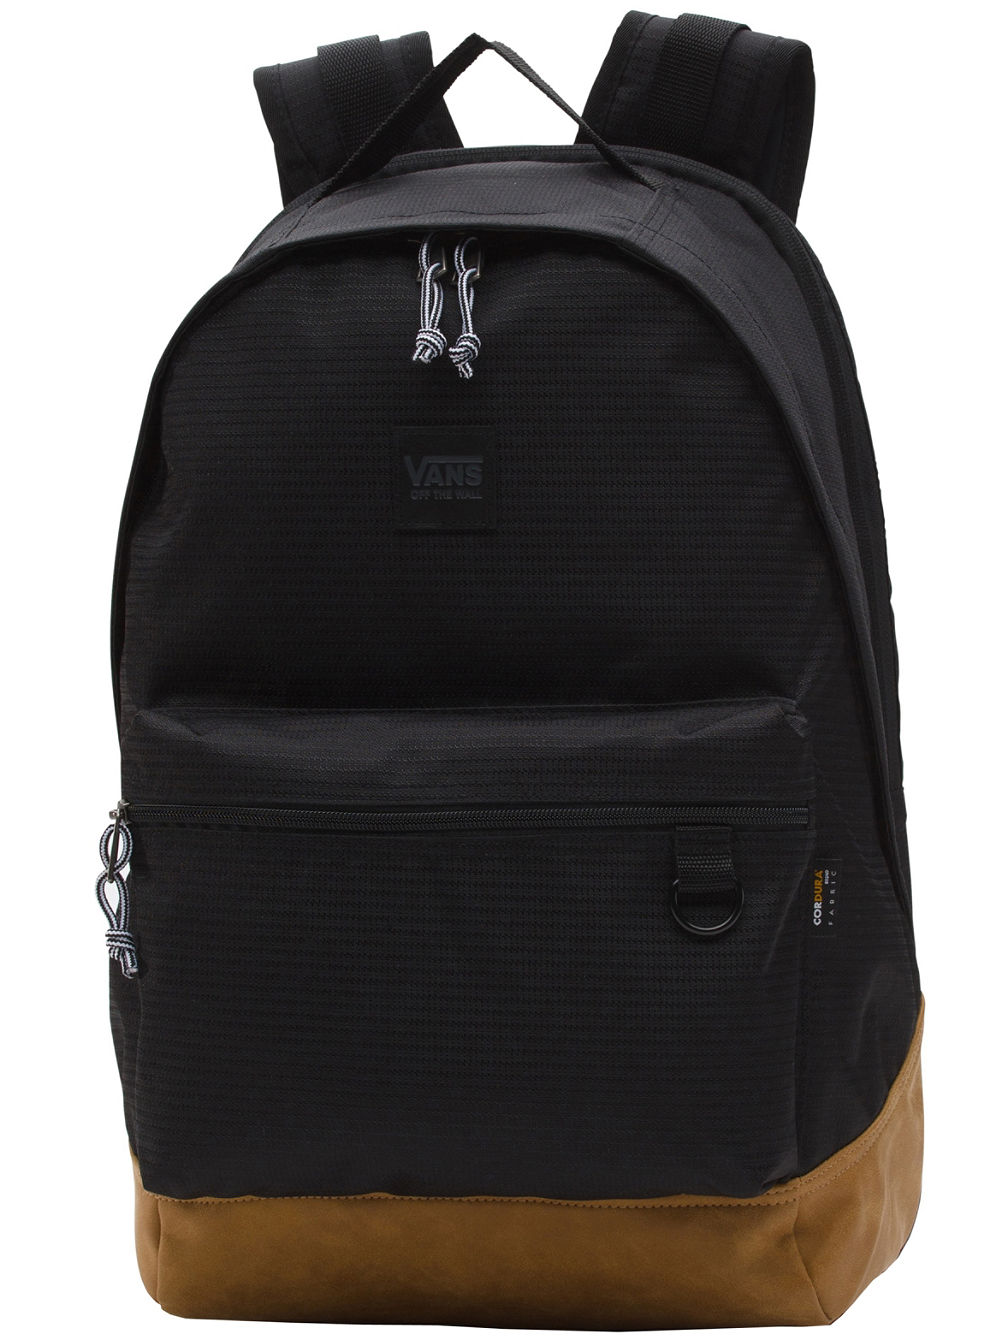 The Guide Backpack